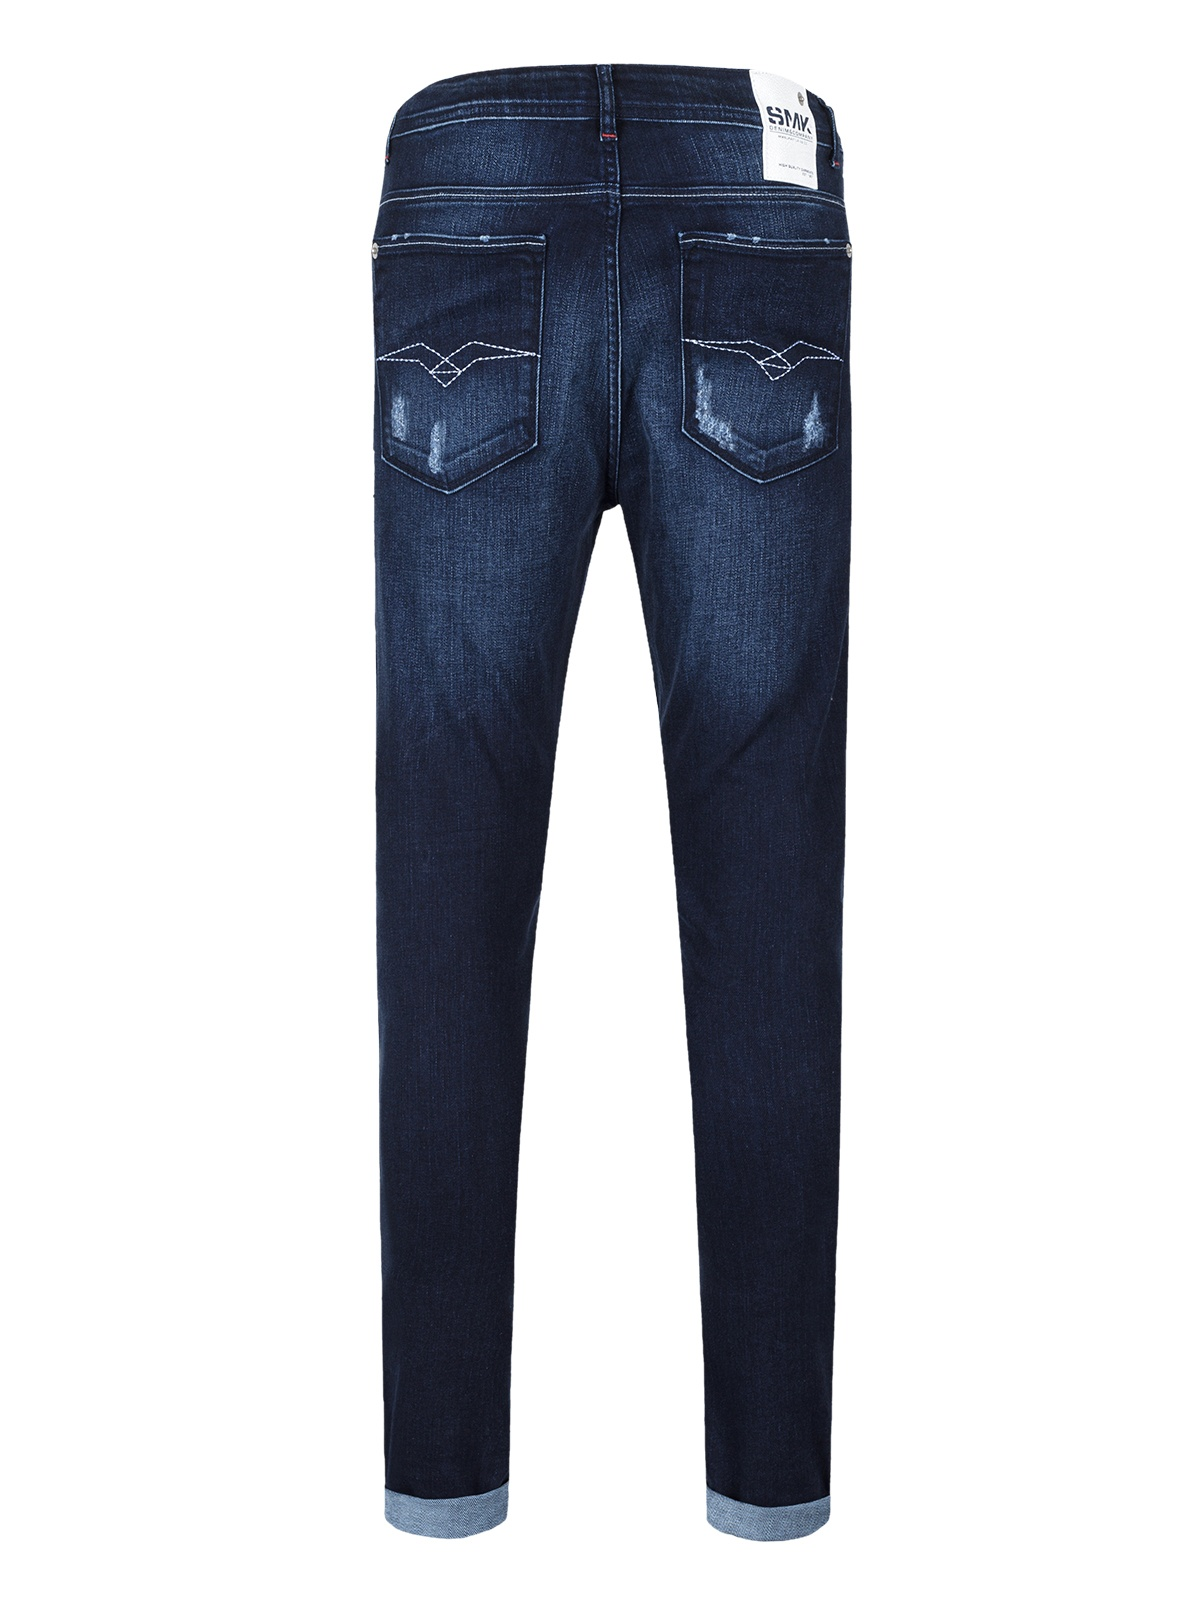 CALÇA SMK DENIM TRADITION